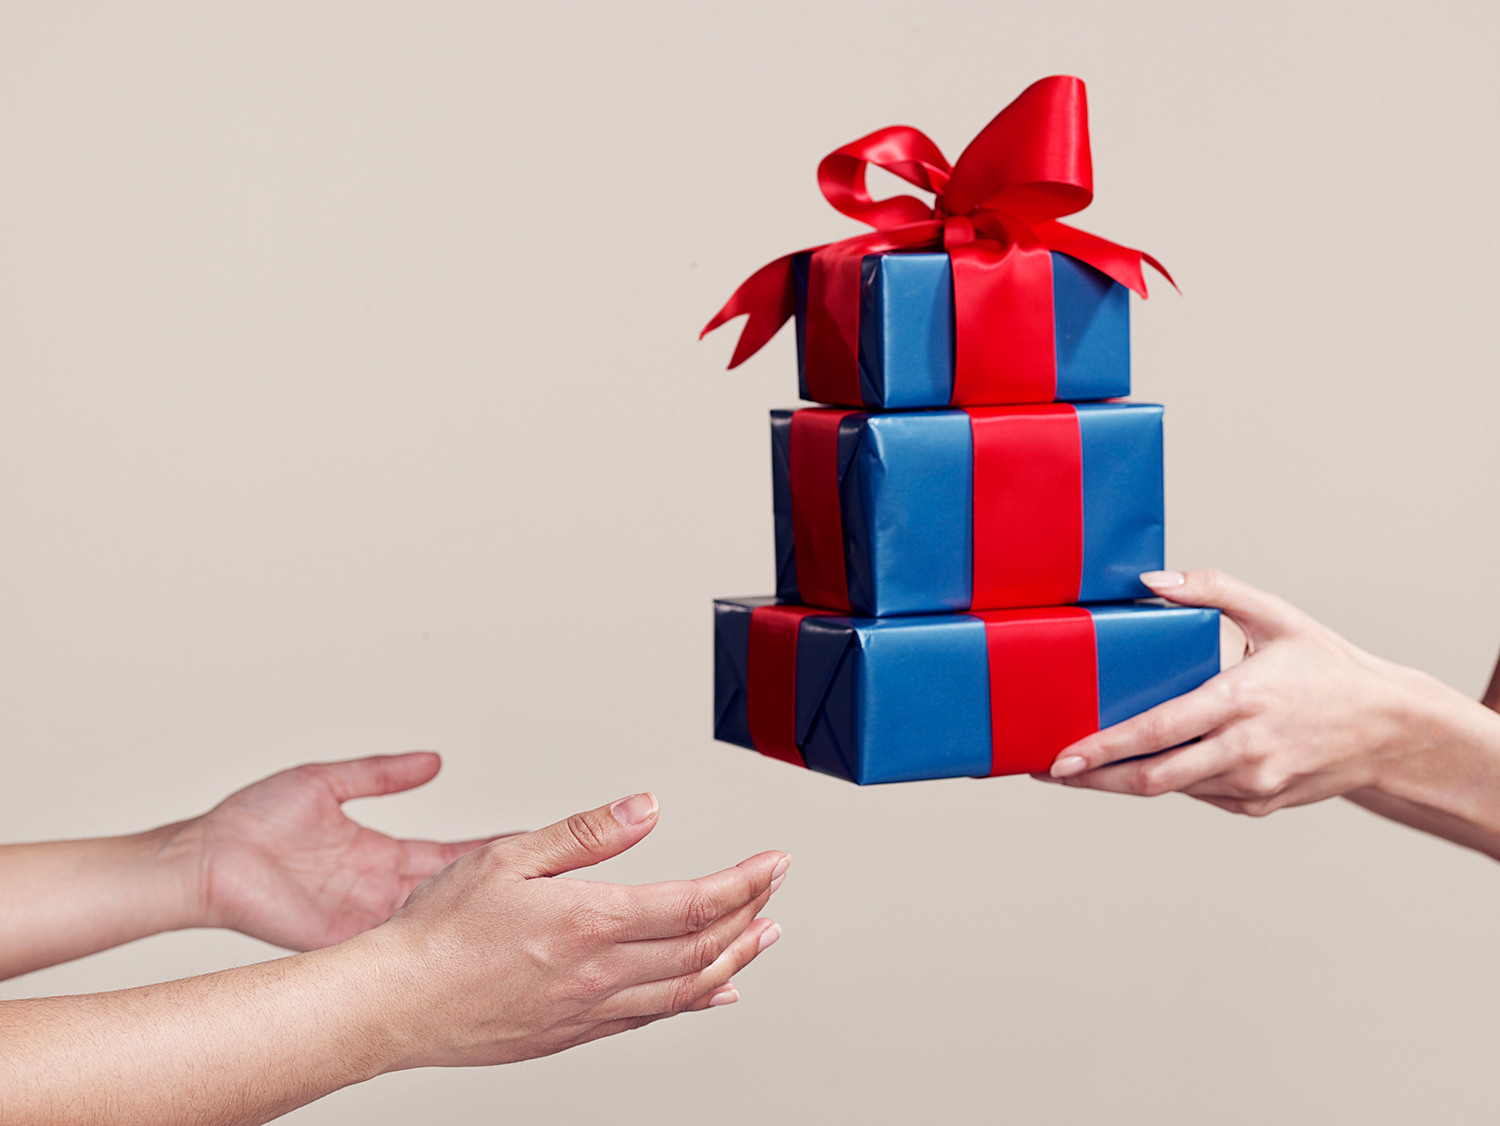 <p>What to Do With Gifts You Don't Want</p>